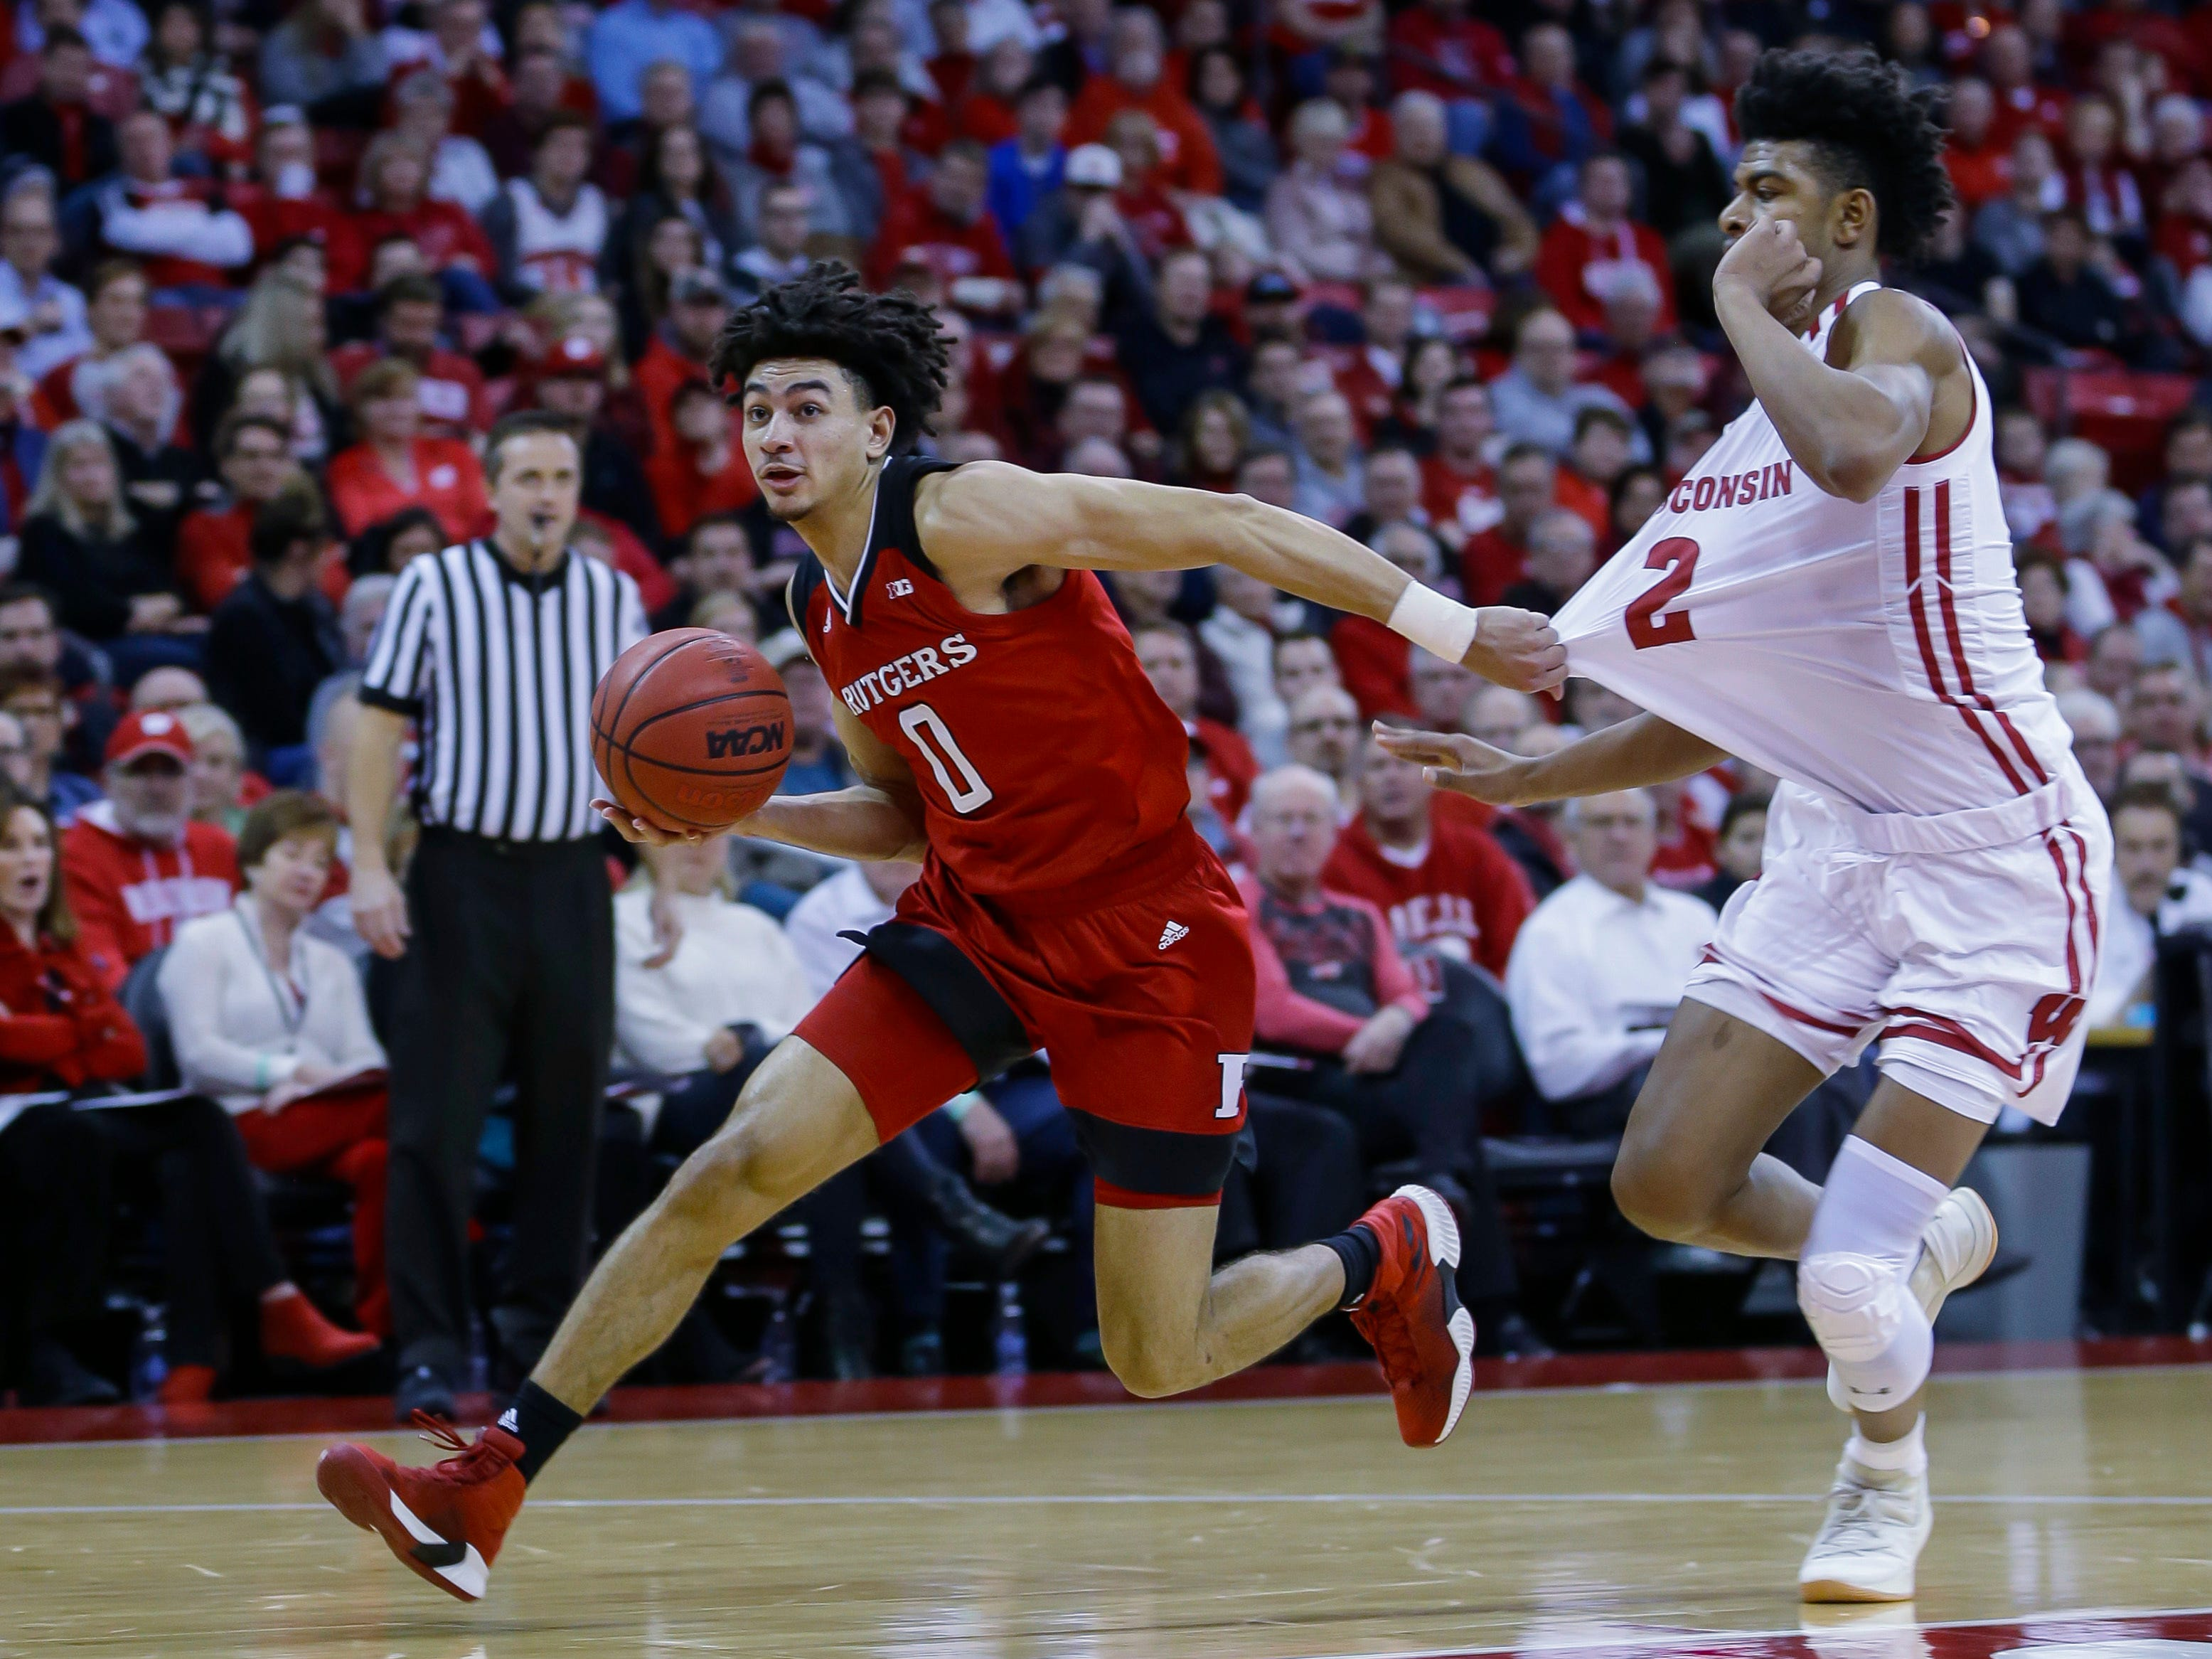 Geo Baker of Rutgers is whistled for a foul as he grabs a hold of Wisconsin forward Aleem Ford's jersey during the first half on Monday night.